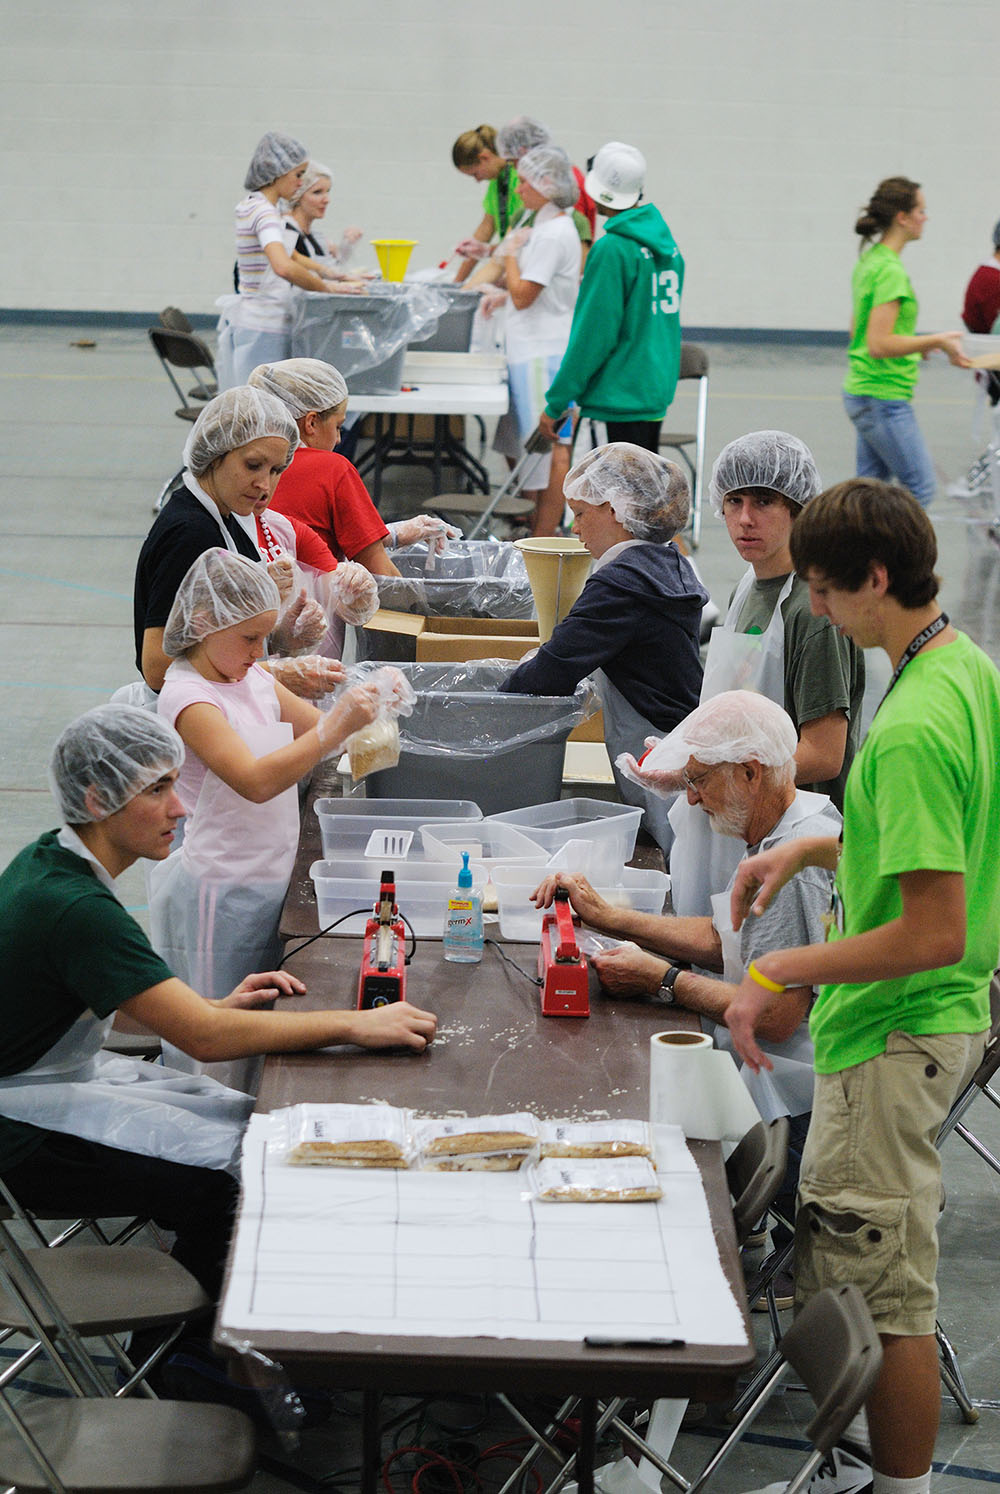 Hesston College students, faculty, staff and local community members came together to package more than 50,000 meals during Numana's food-packaging event Oct. 1. The project was the culminating event for the college's first No Impact Week. Pictured clockwise from left in the foreground: Scott Weaver (Goshen, Ind.), Rachel Teeter, staff member Angie Teeter, Collin Miller (Wellman, Iowa), Bible faculty Marion Bontrager and Alex Miller (Beemer, Neb.).